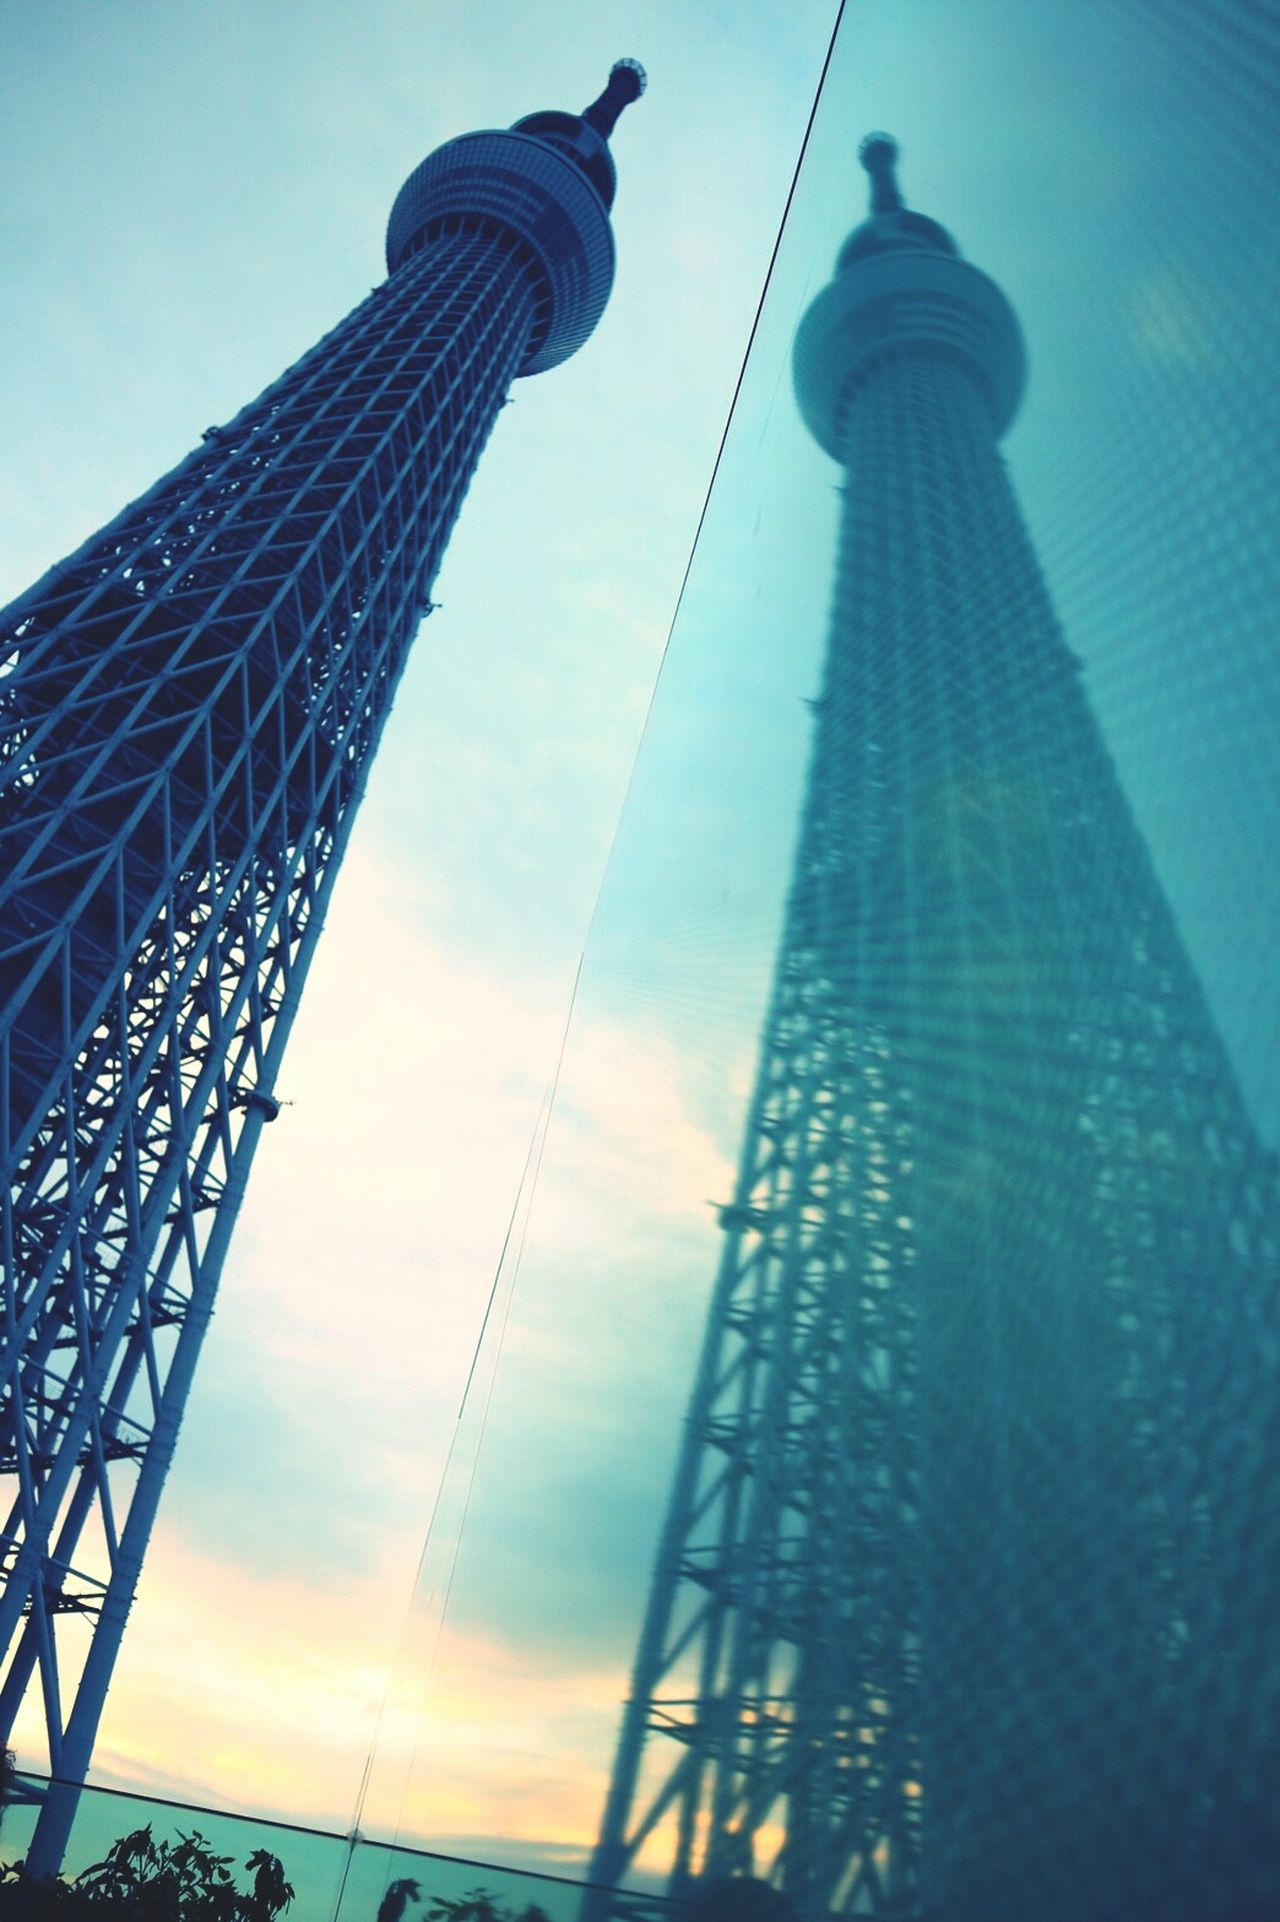 Sky Travel City Low Angle View Tower Built Structure Cloud - Sky No People Outdoors Travel Destinations Tokyo Skytree Tokyoskytree Tokyo Japan Tourism Tokyo Days Tokyo Sky Tree Tokyo,Japan Tokyo